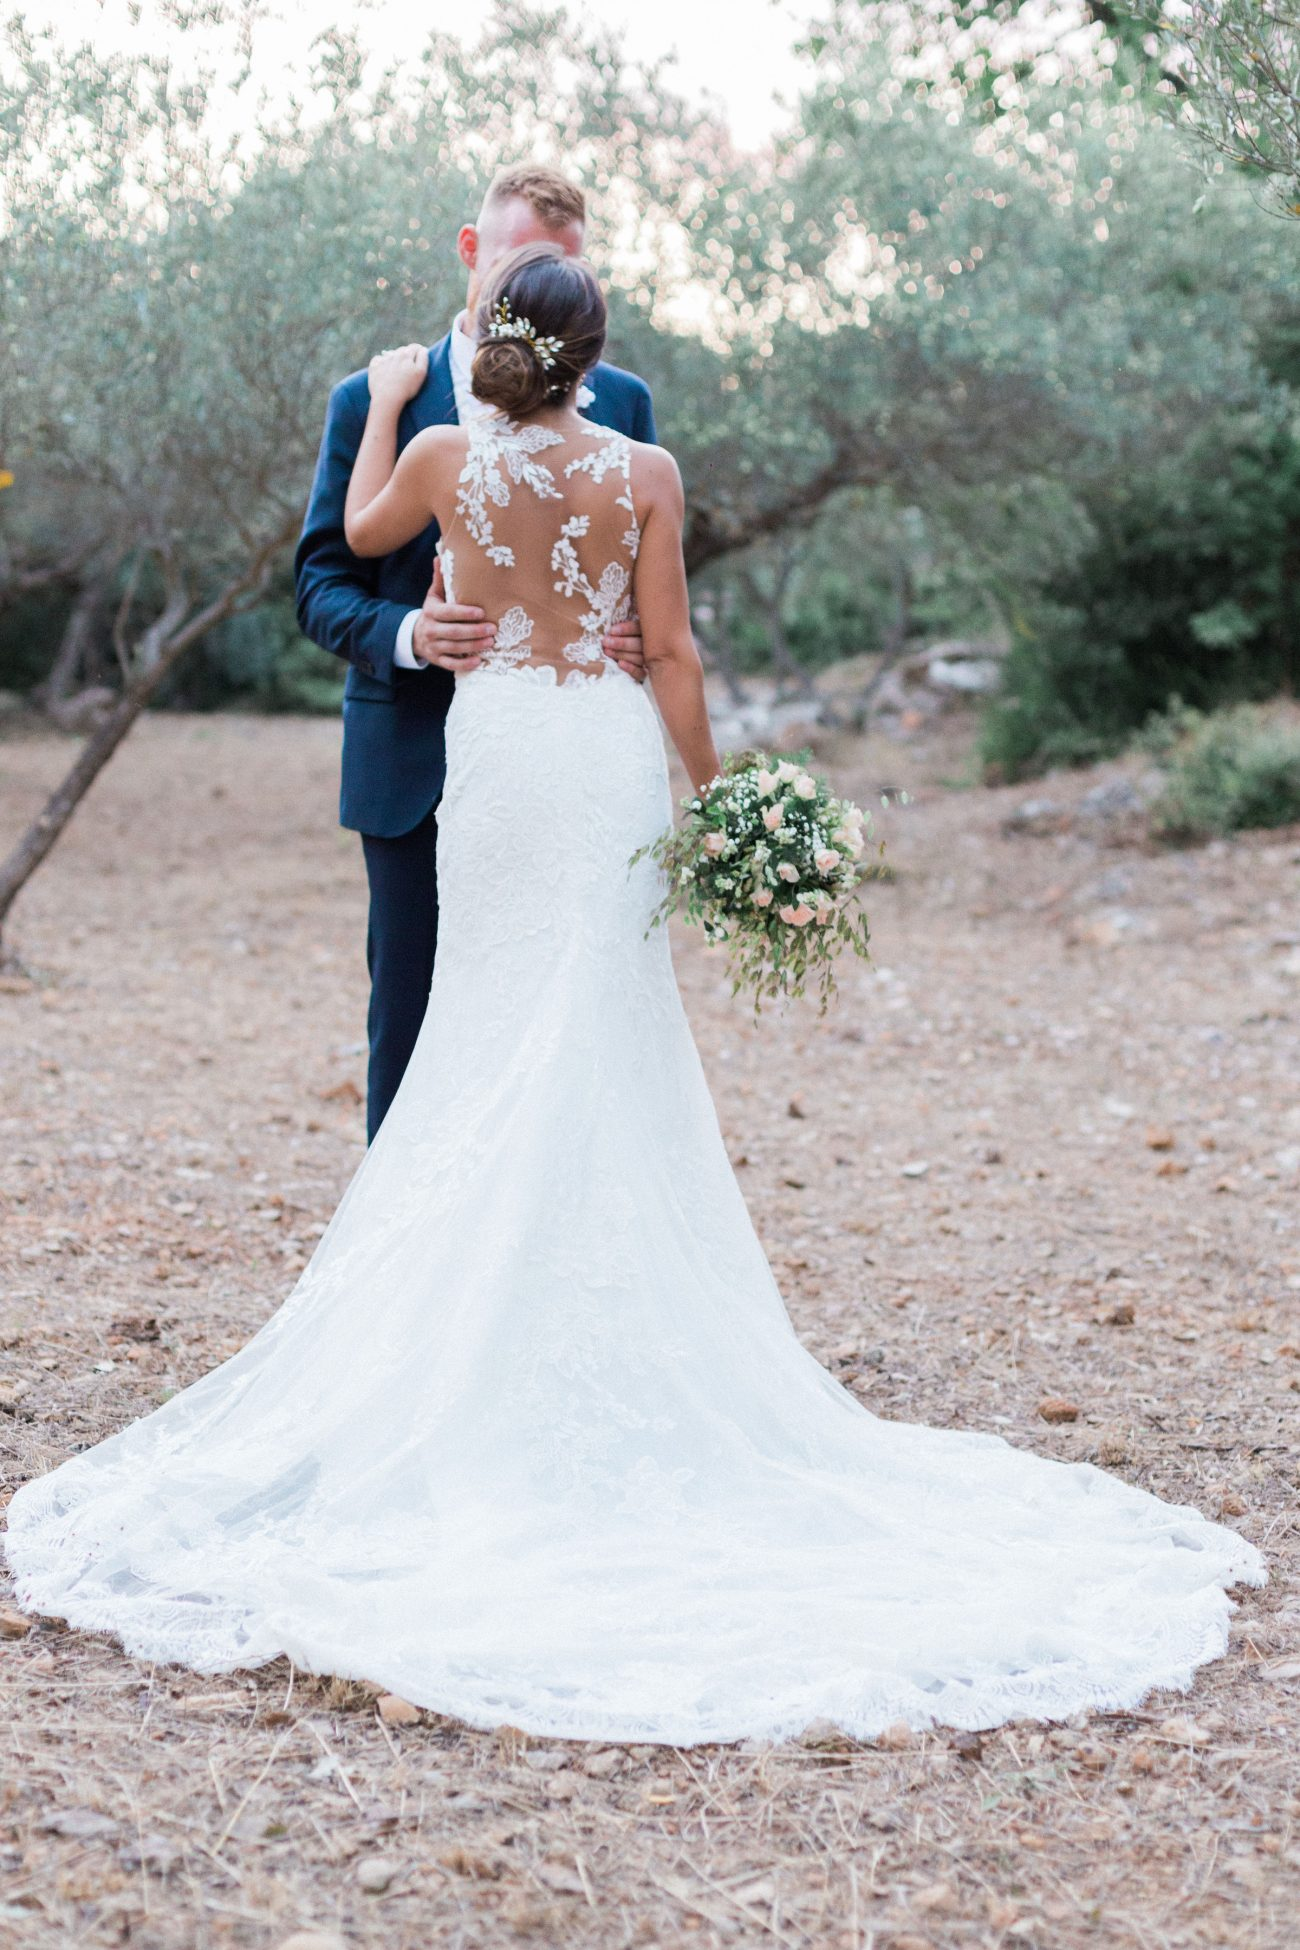 A Romantic Love Story Celebrated In Provence Ceremony Made Complete With Rustic Elements and Blue Accents